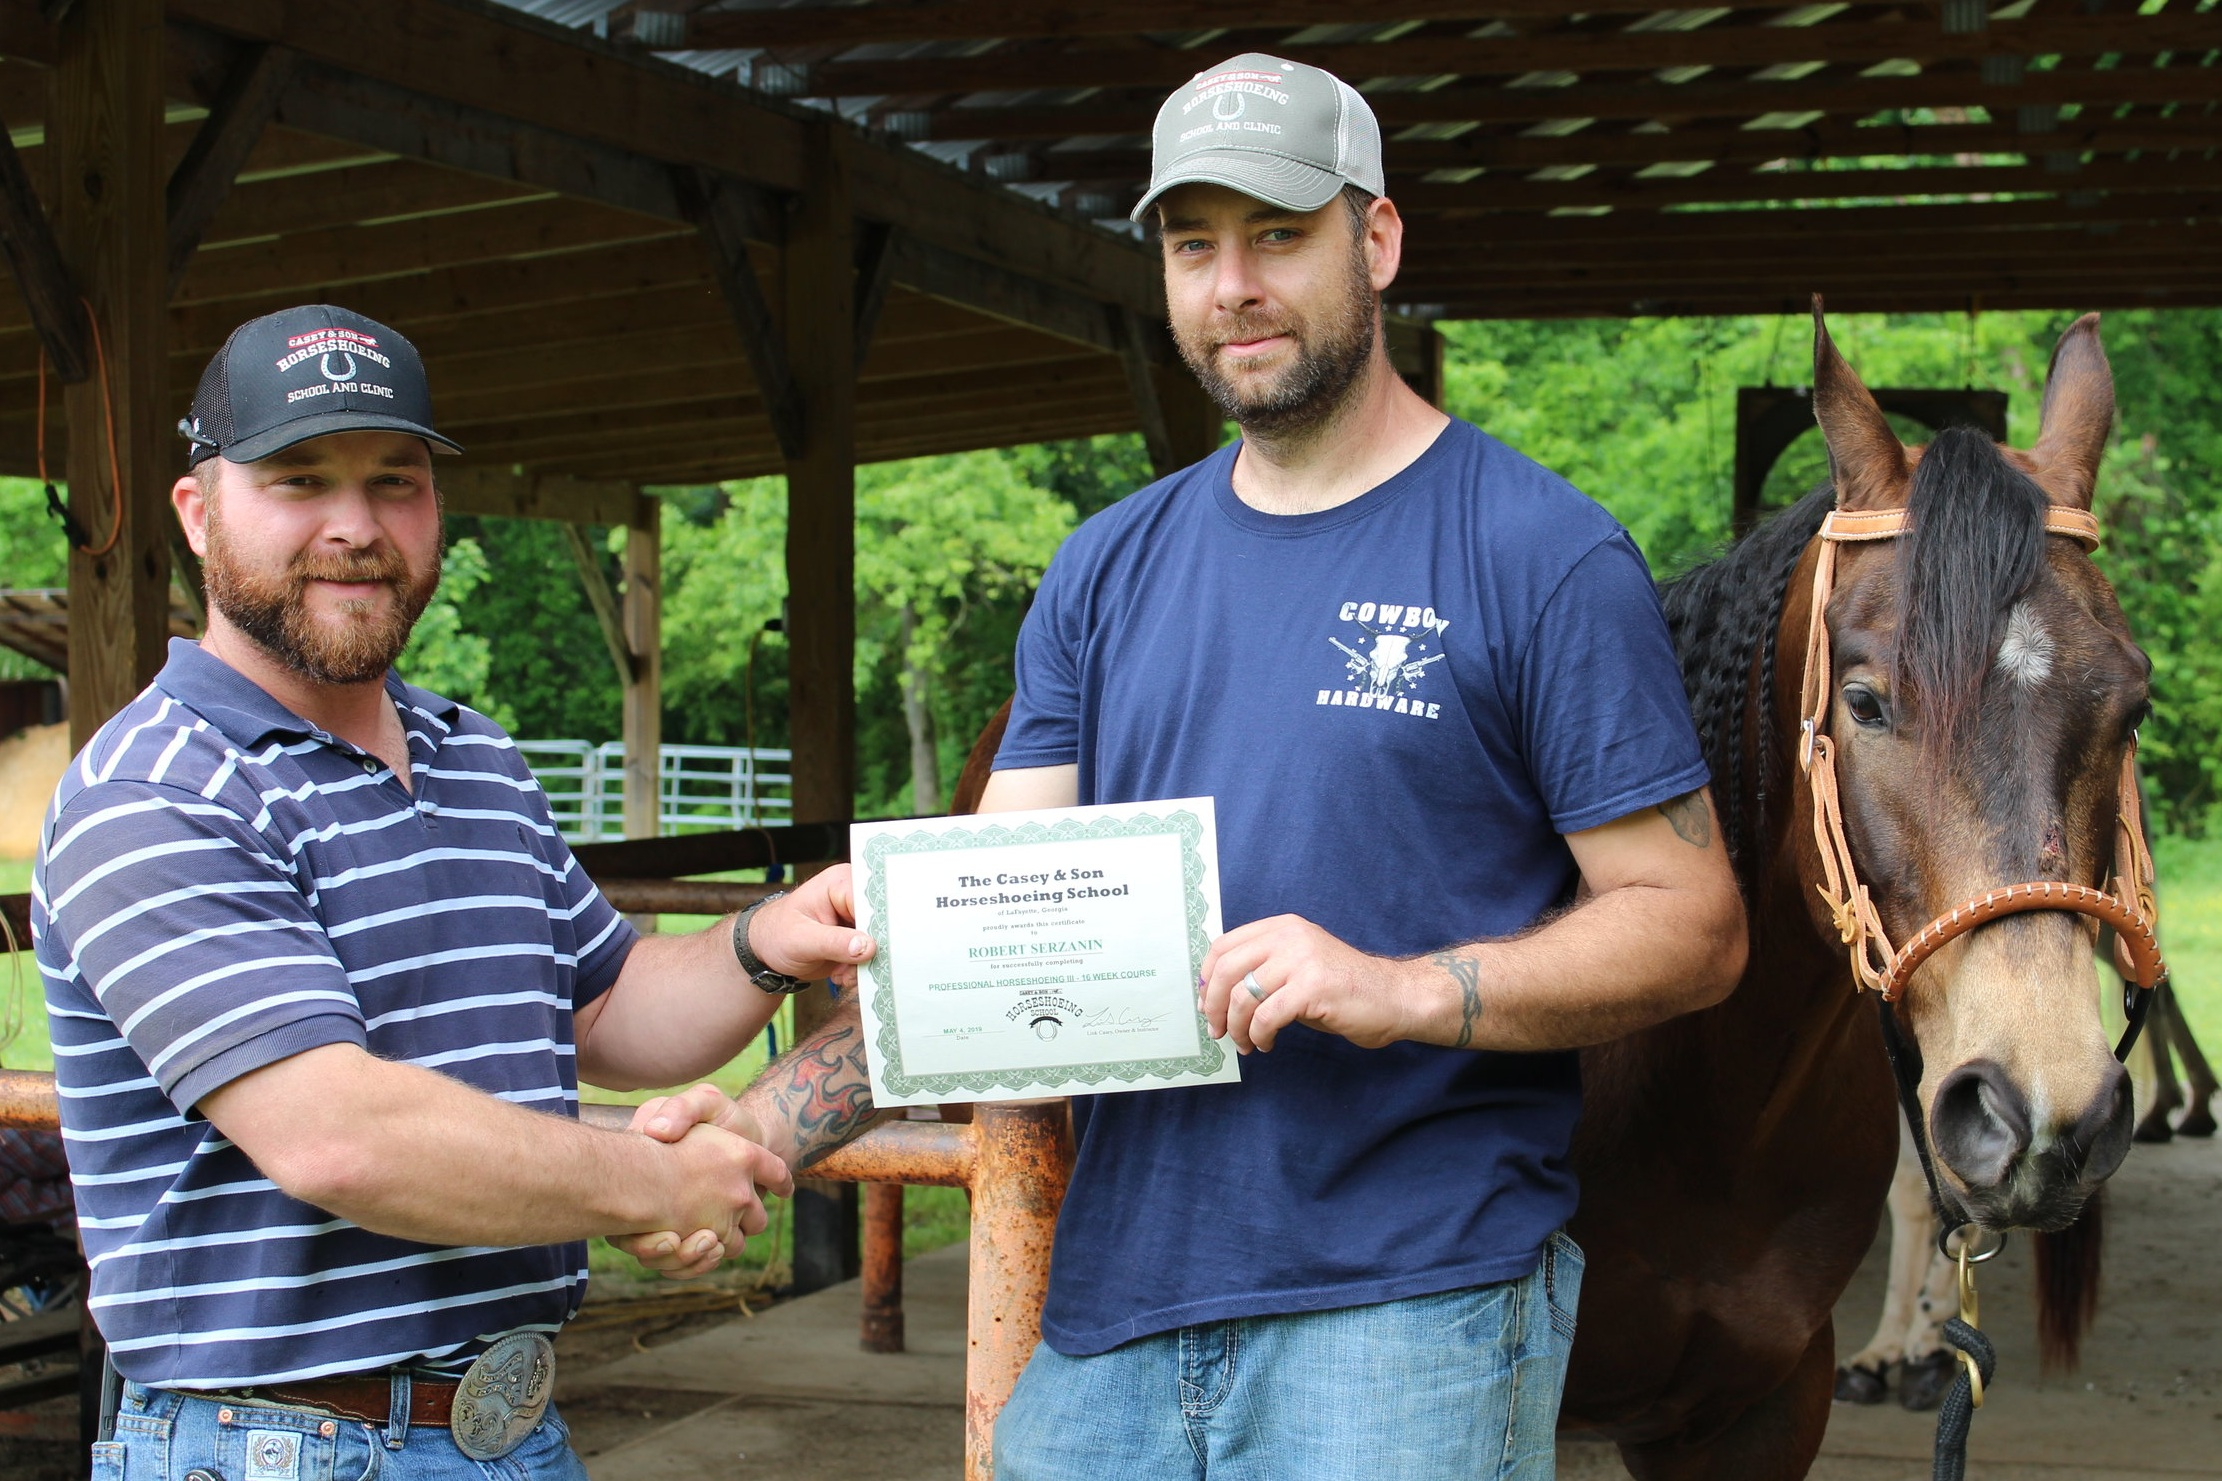 Robert+Serzanin%2C+Veteran+of+MI%2C+new+Certified+Farrier%2C+EFT%2C+Reining+competitor+with+his+3+yr+mare+in+training+he+learned+to+shoe+while+at+Casey+Horseshoeing+School+in+GA%2C+Link+Casey+at+left.jpg